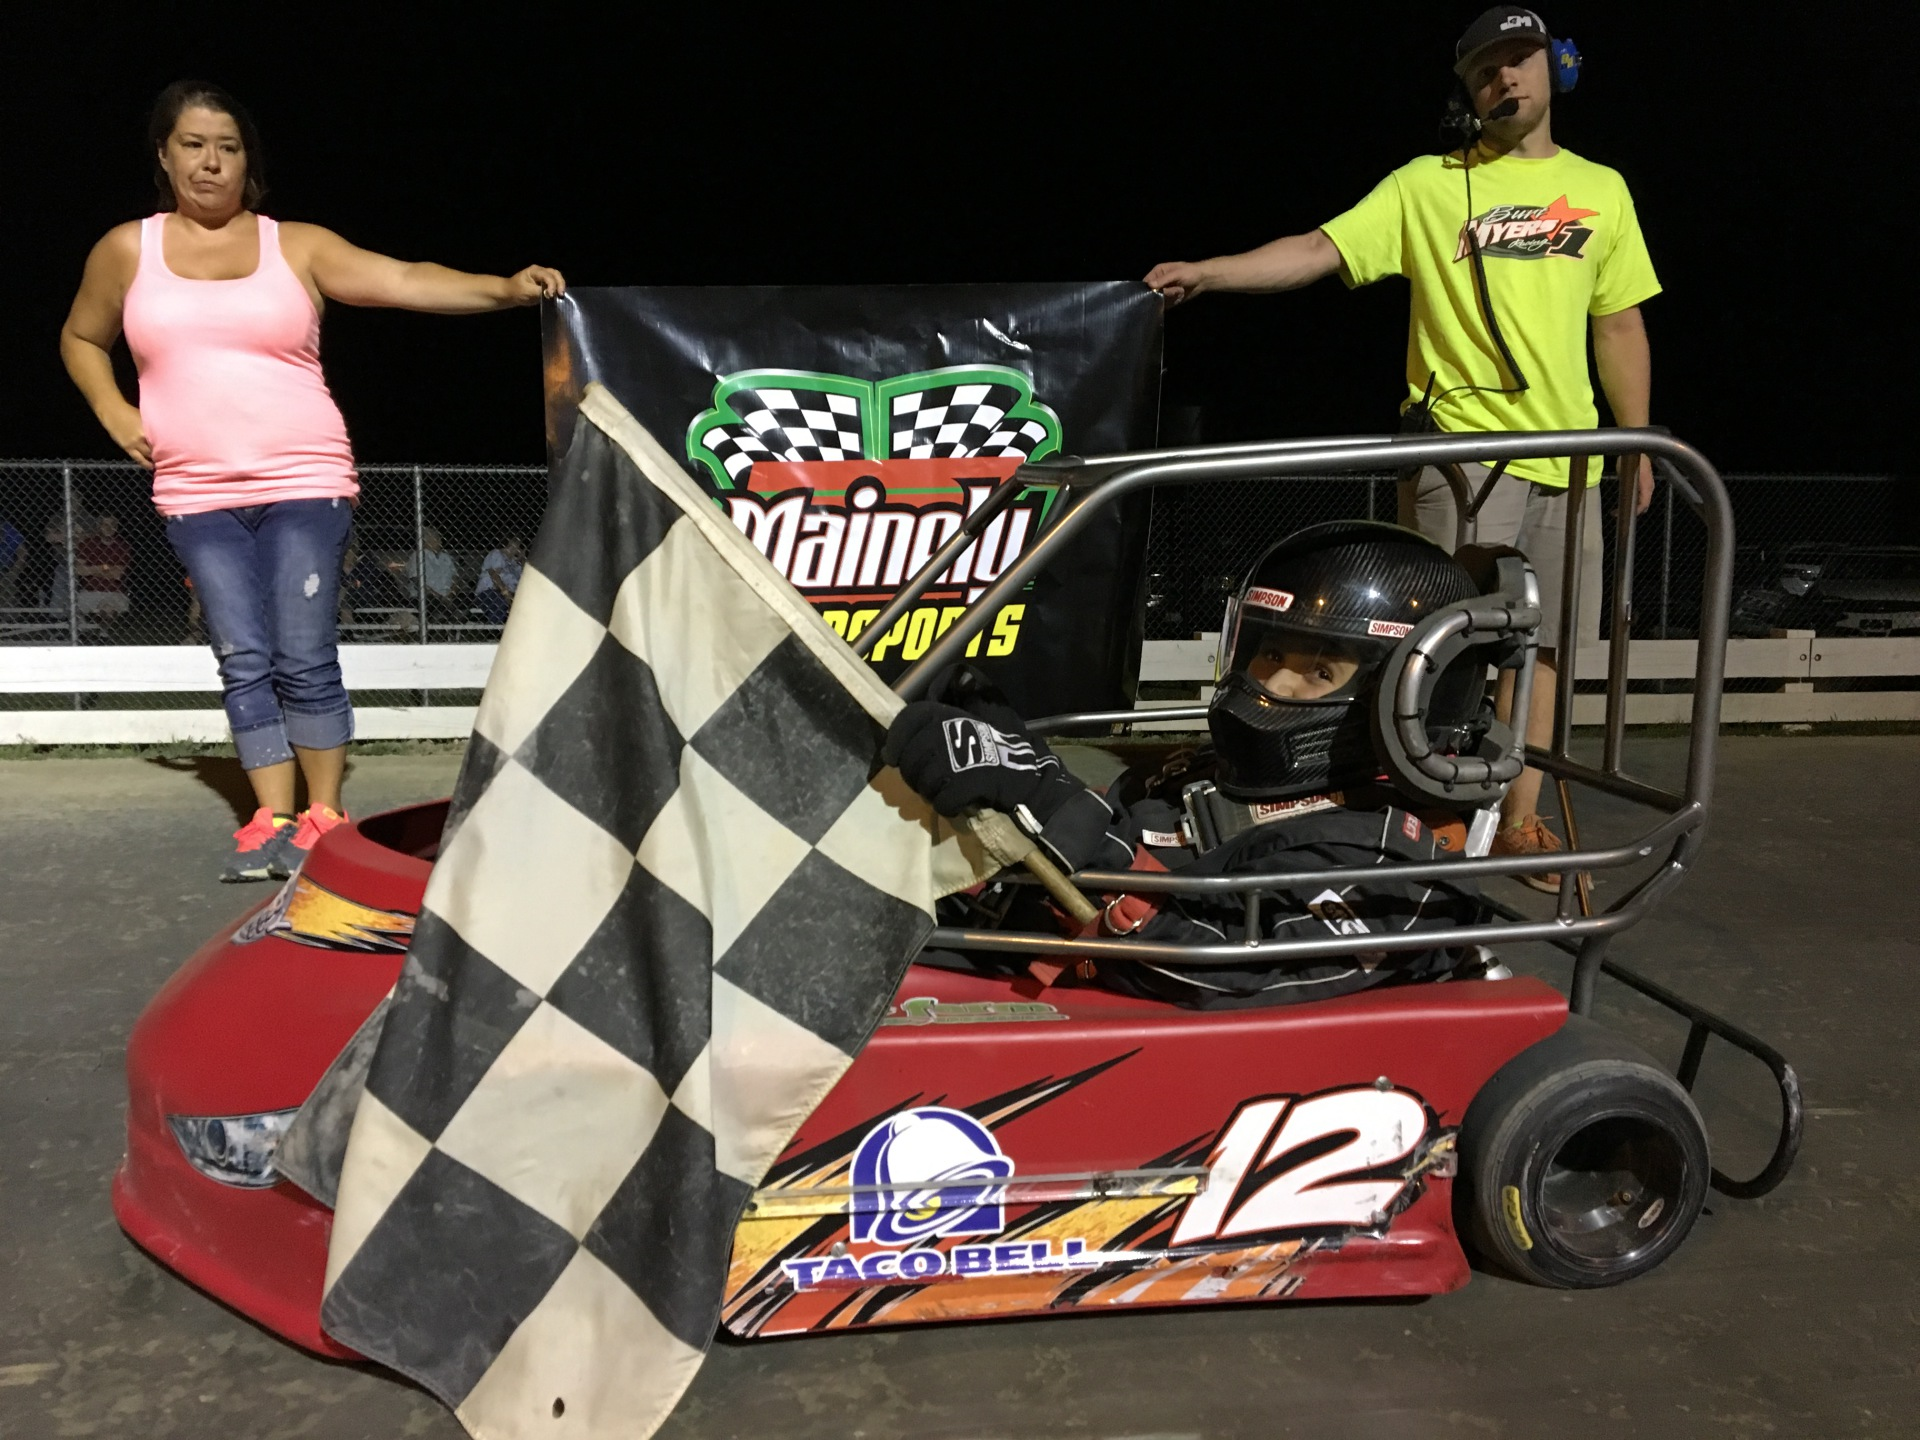 BLAKE BERRY CAPTURES SR CAGE WIN #1 IN ROUND 6